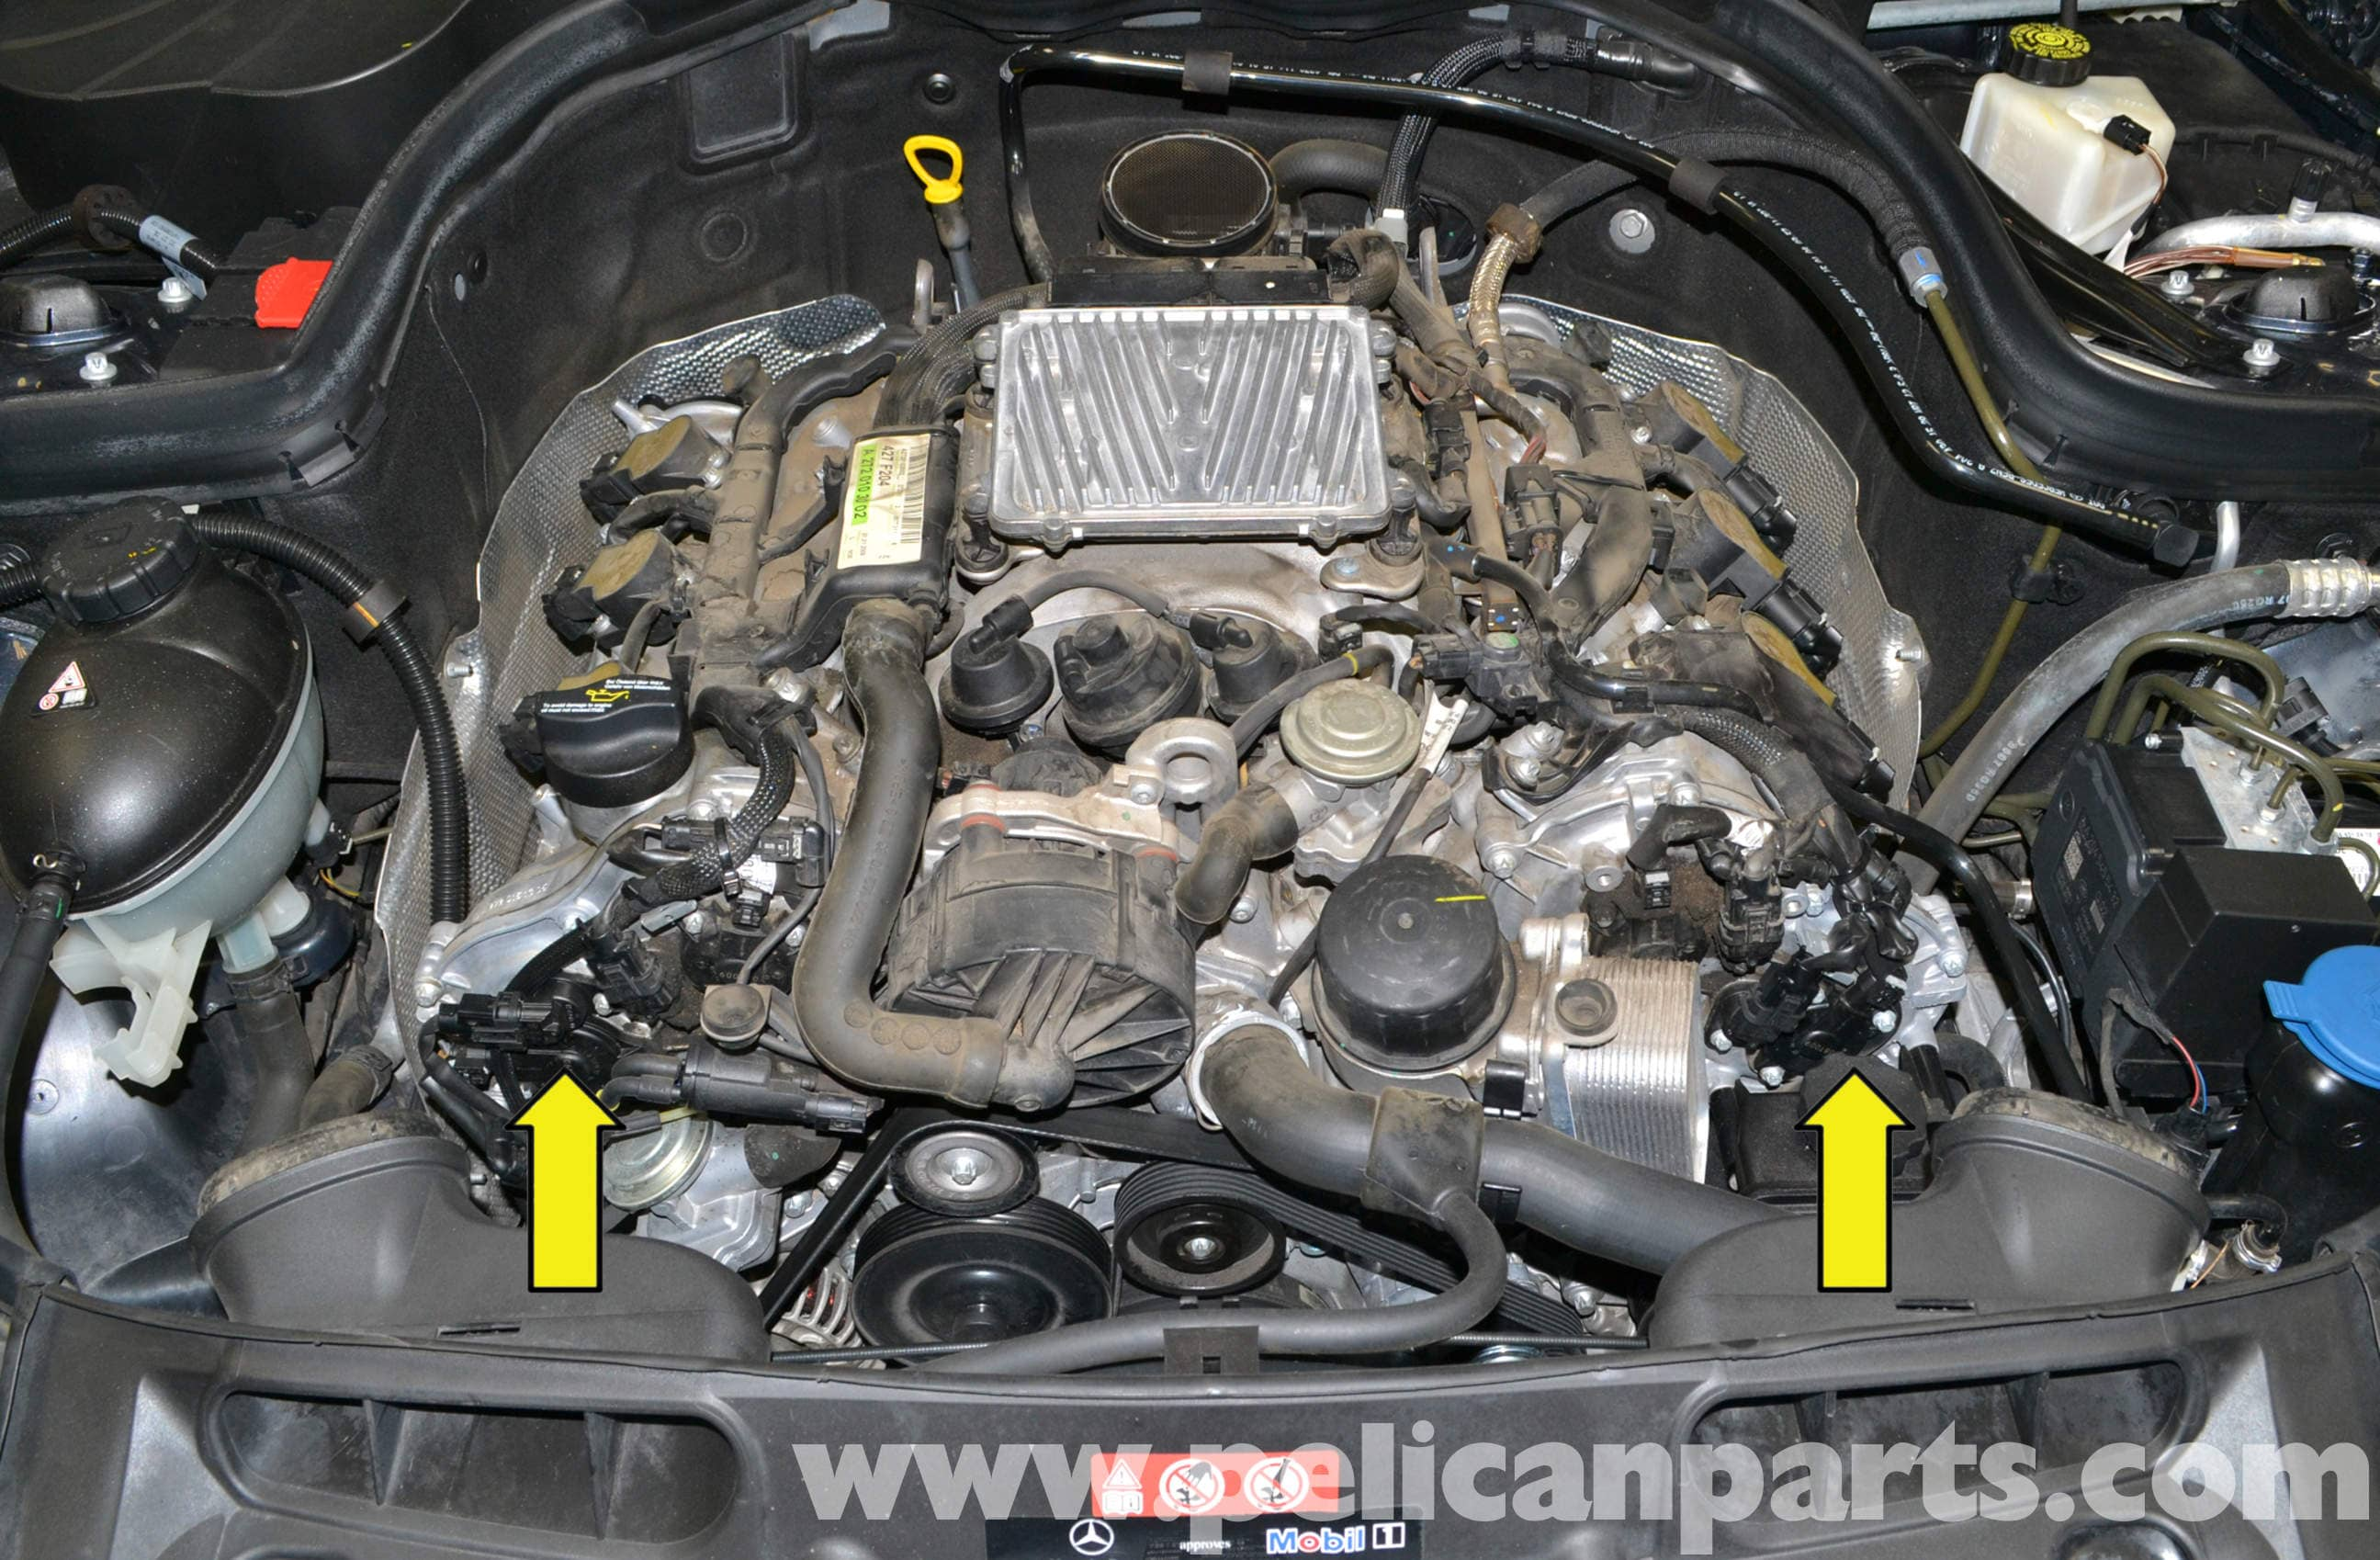 Mercedes-Benz W204 Camshaft Position Sensor Replacement